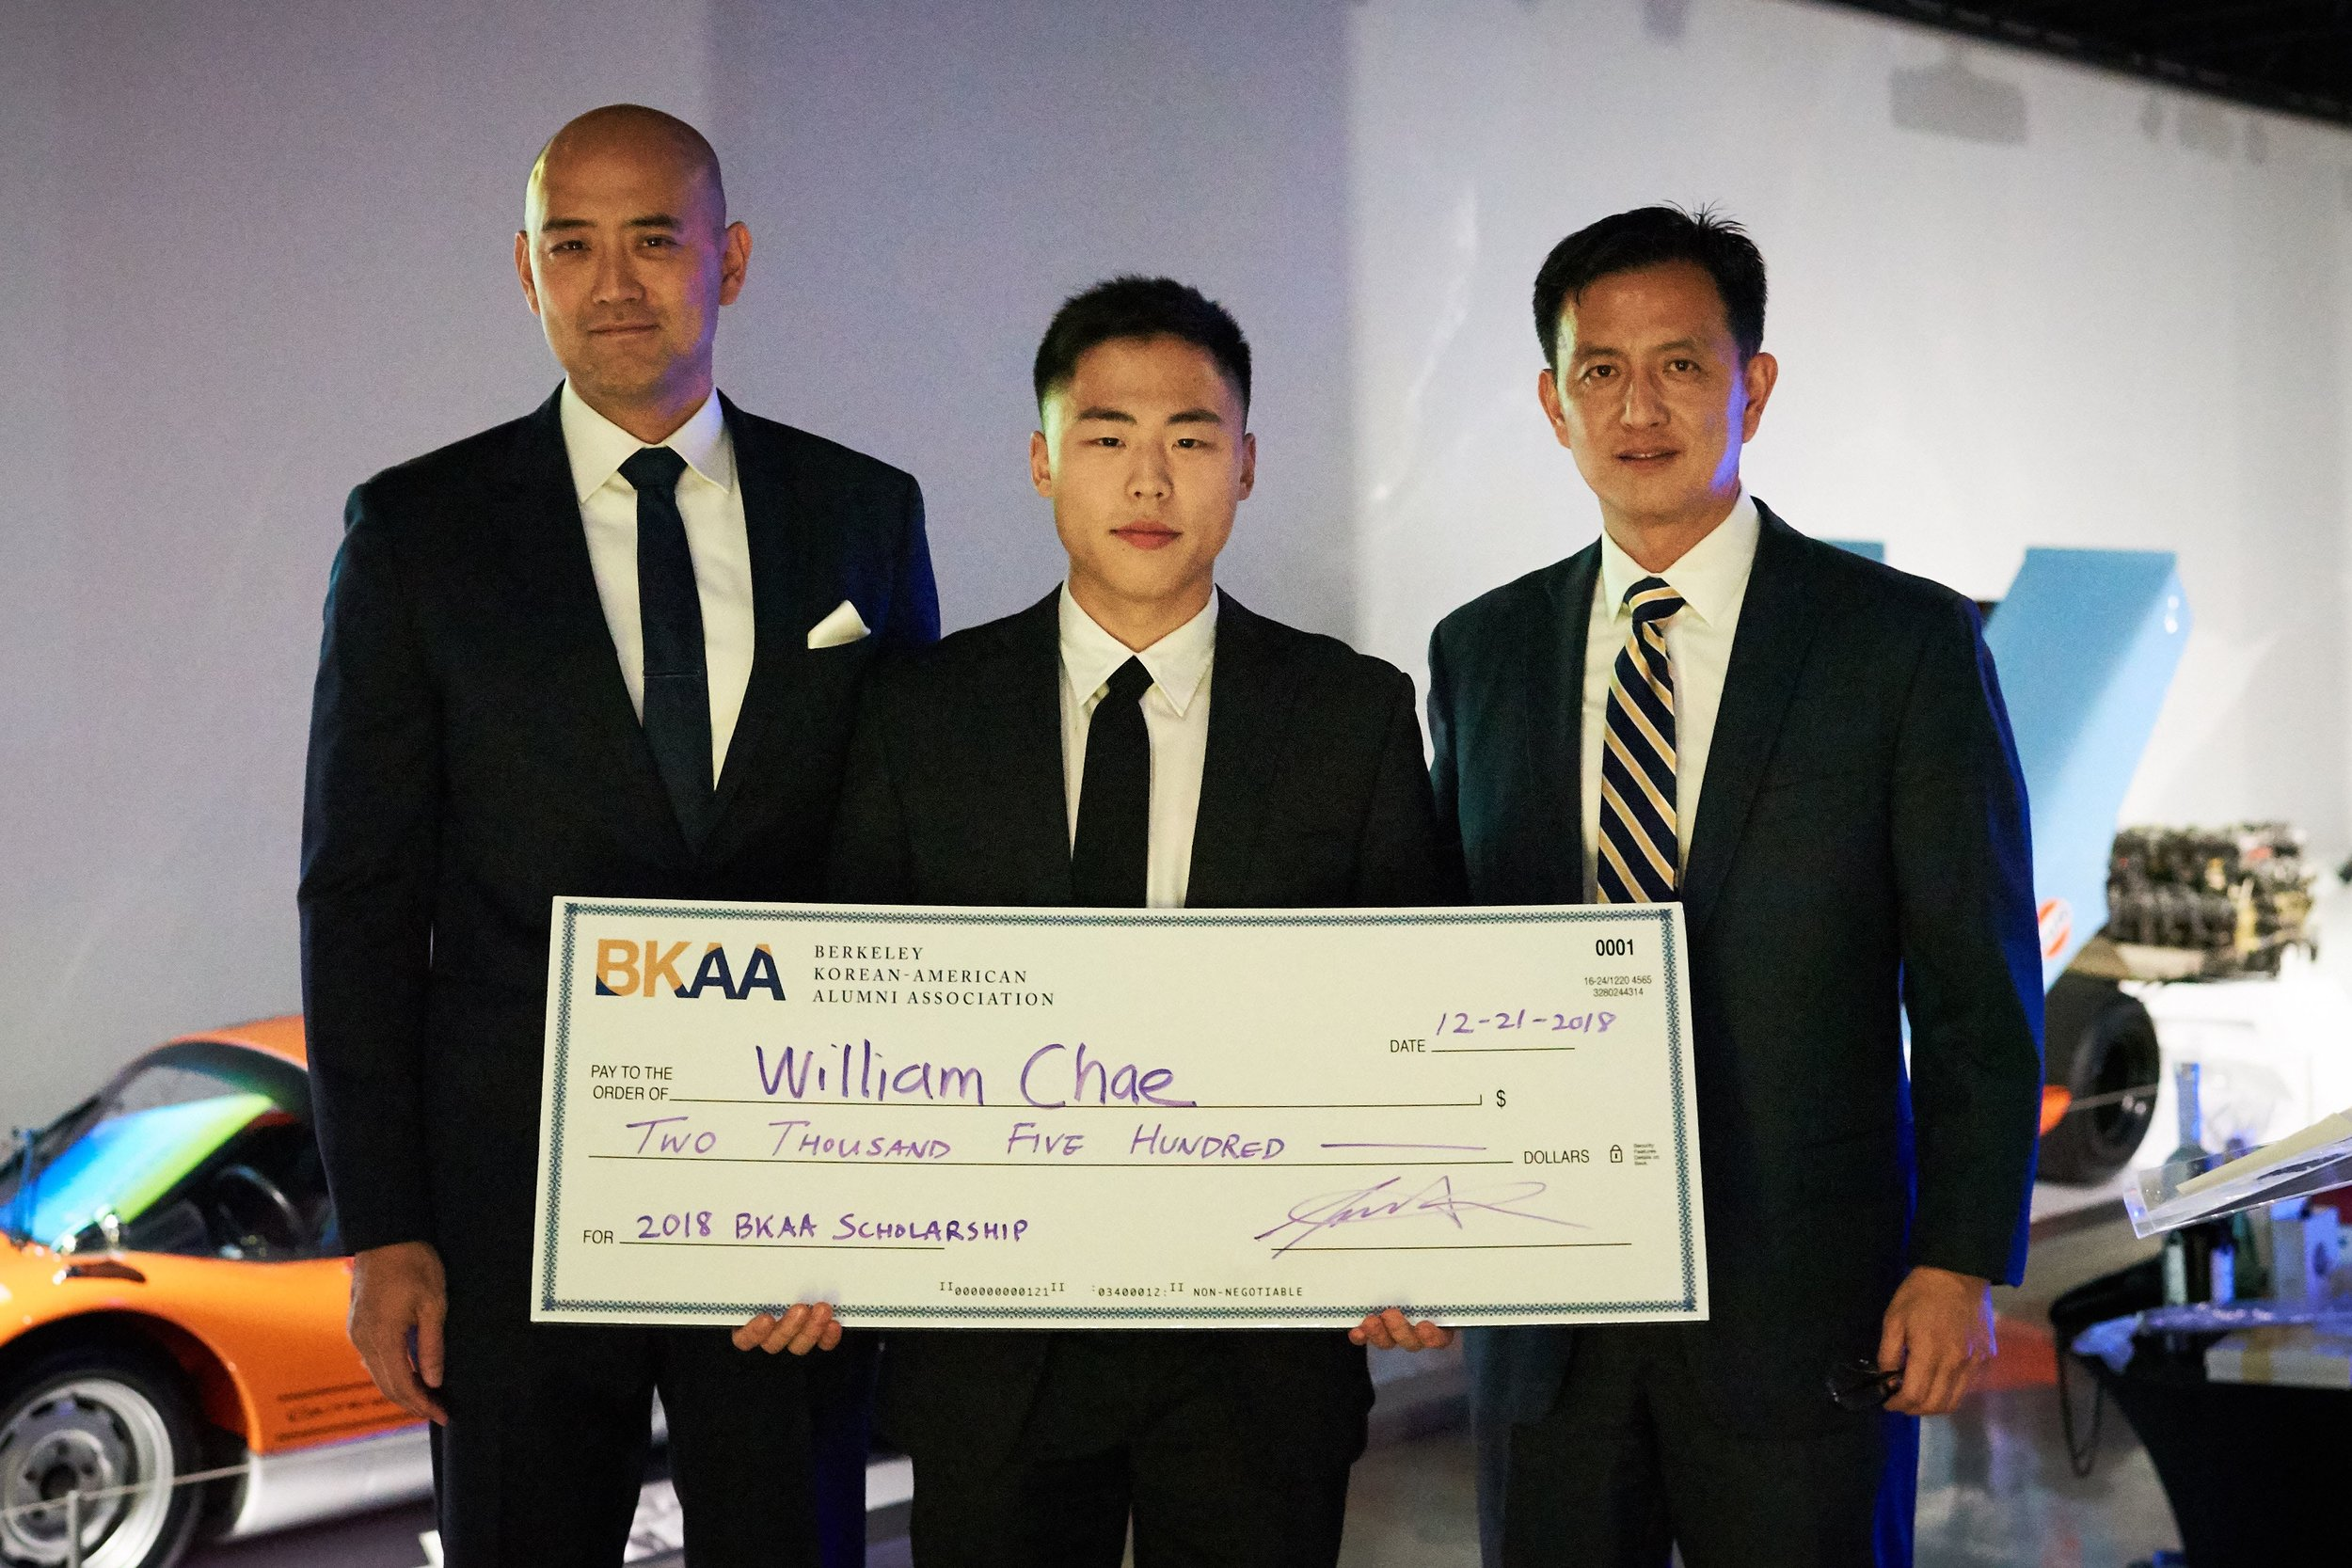 WILLIAM CHAE, Political Science